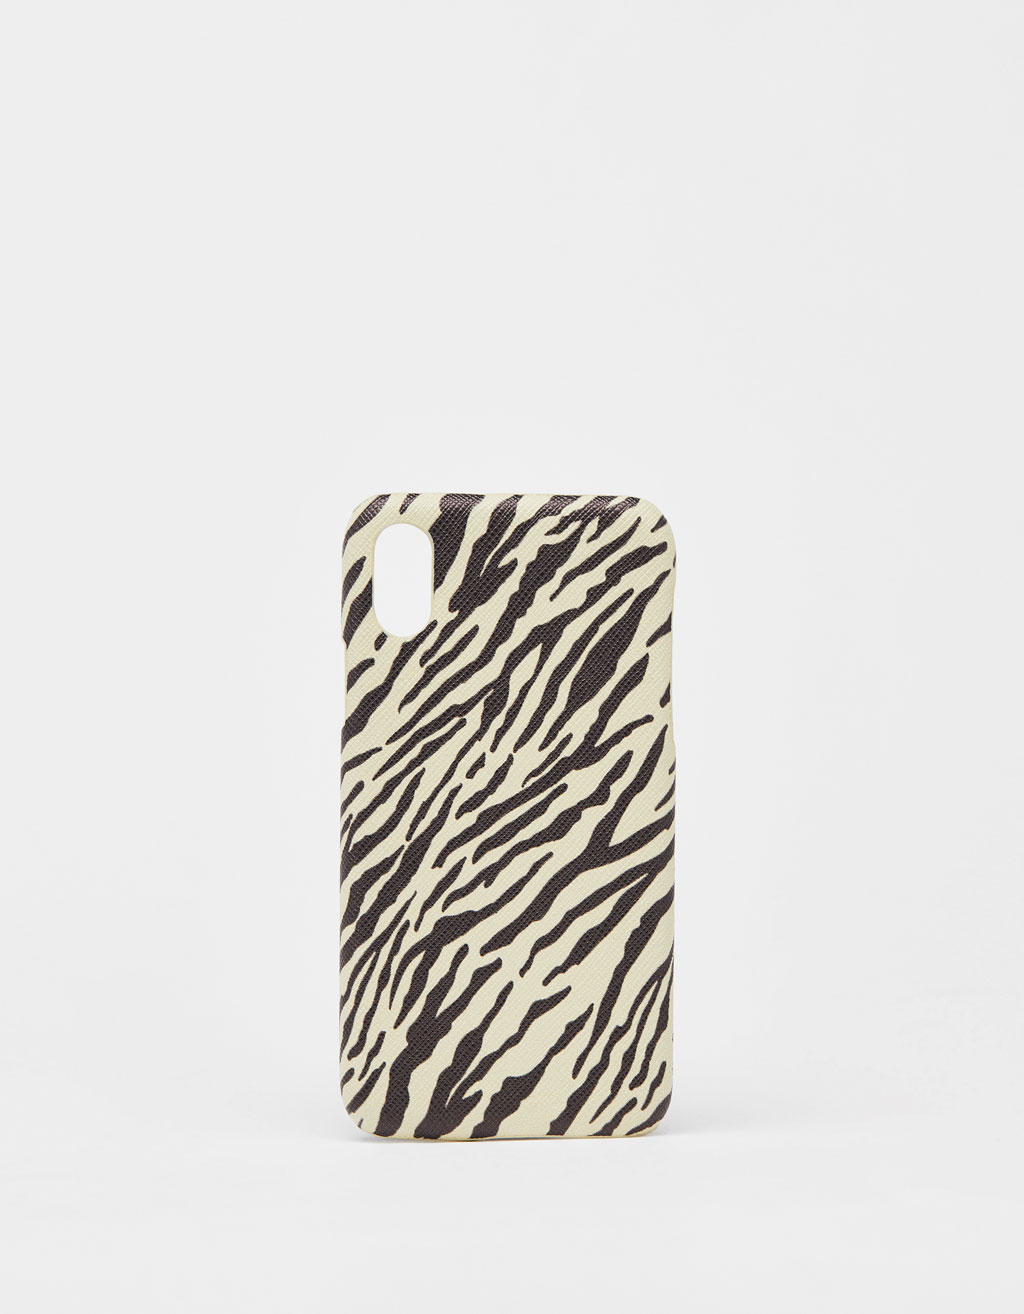 Zebra case for iPhone X/XS